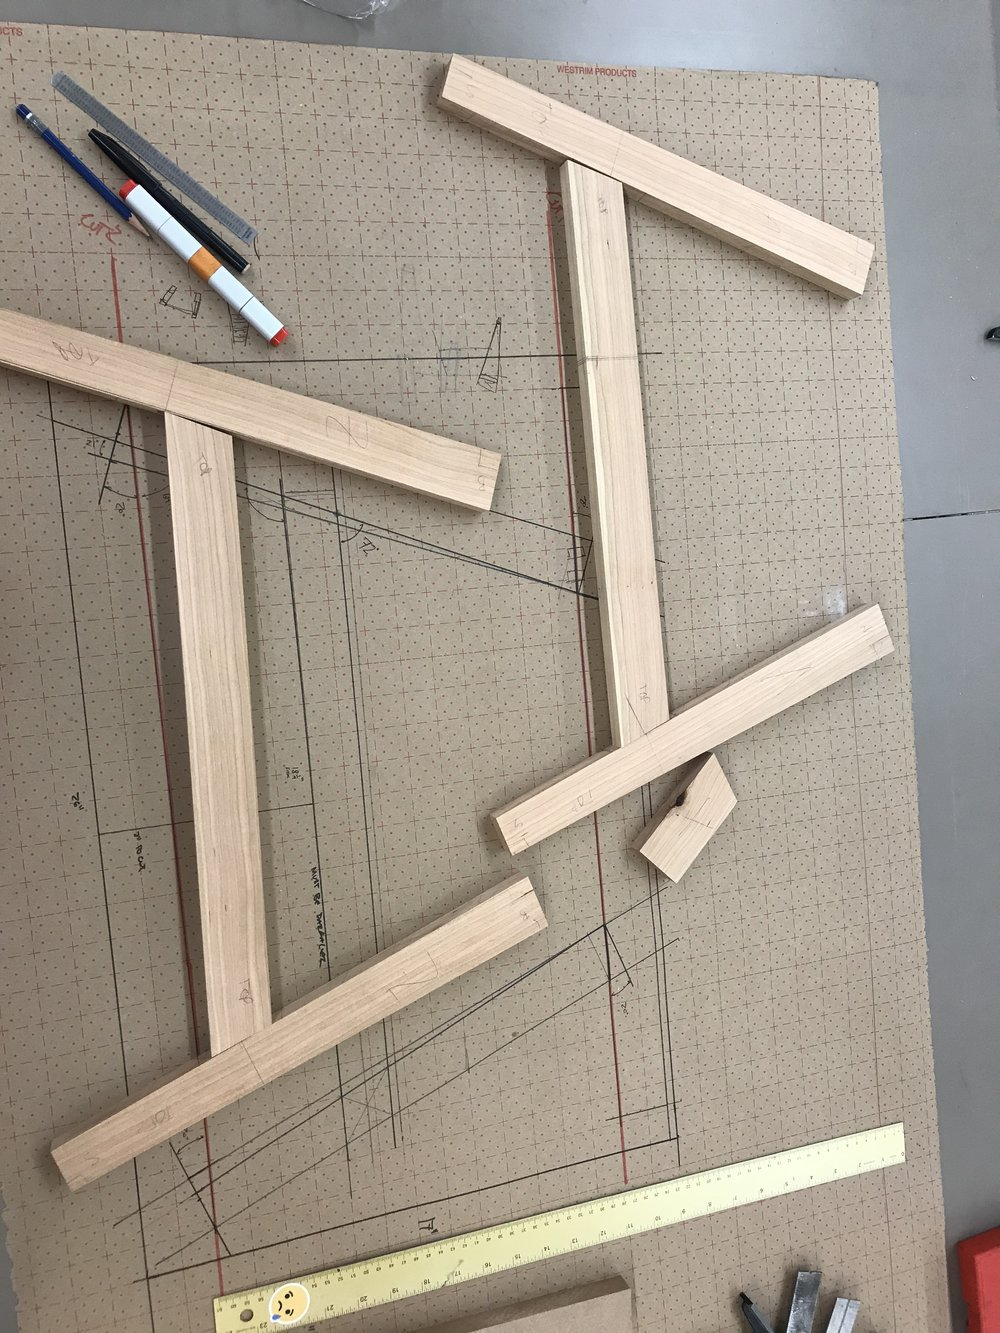 Dry fit test